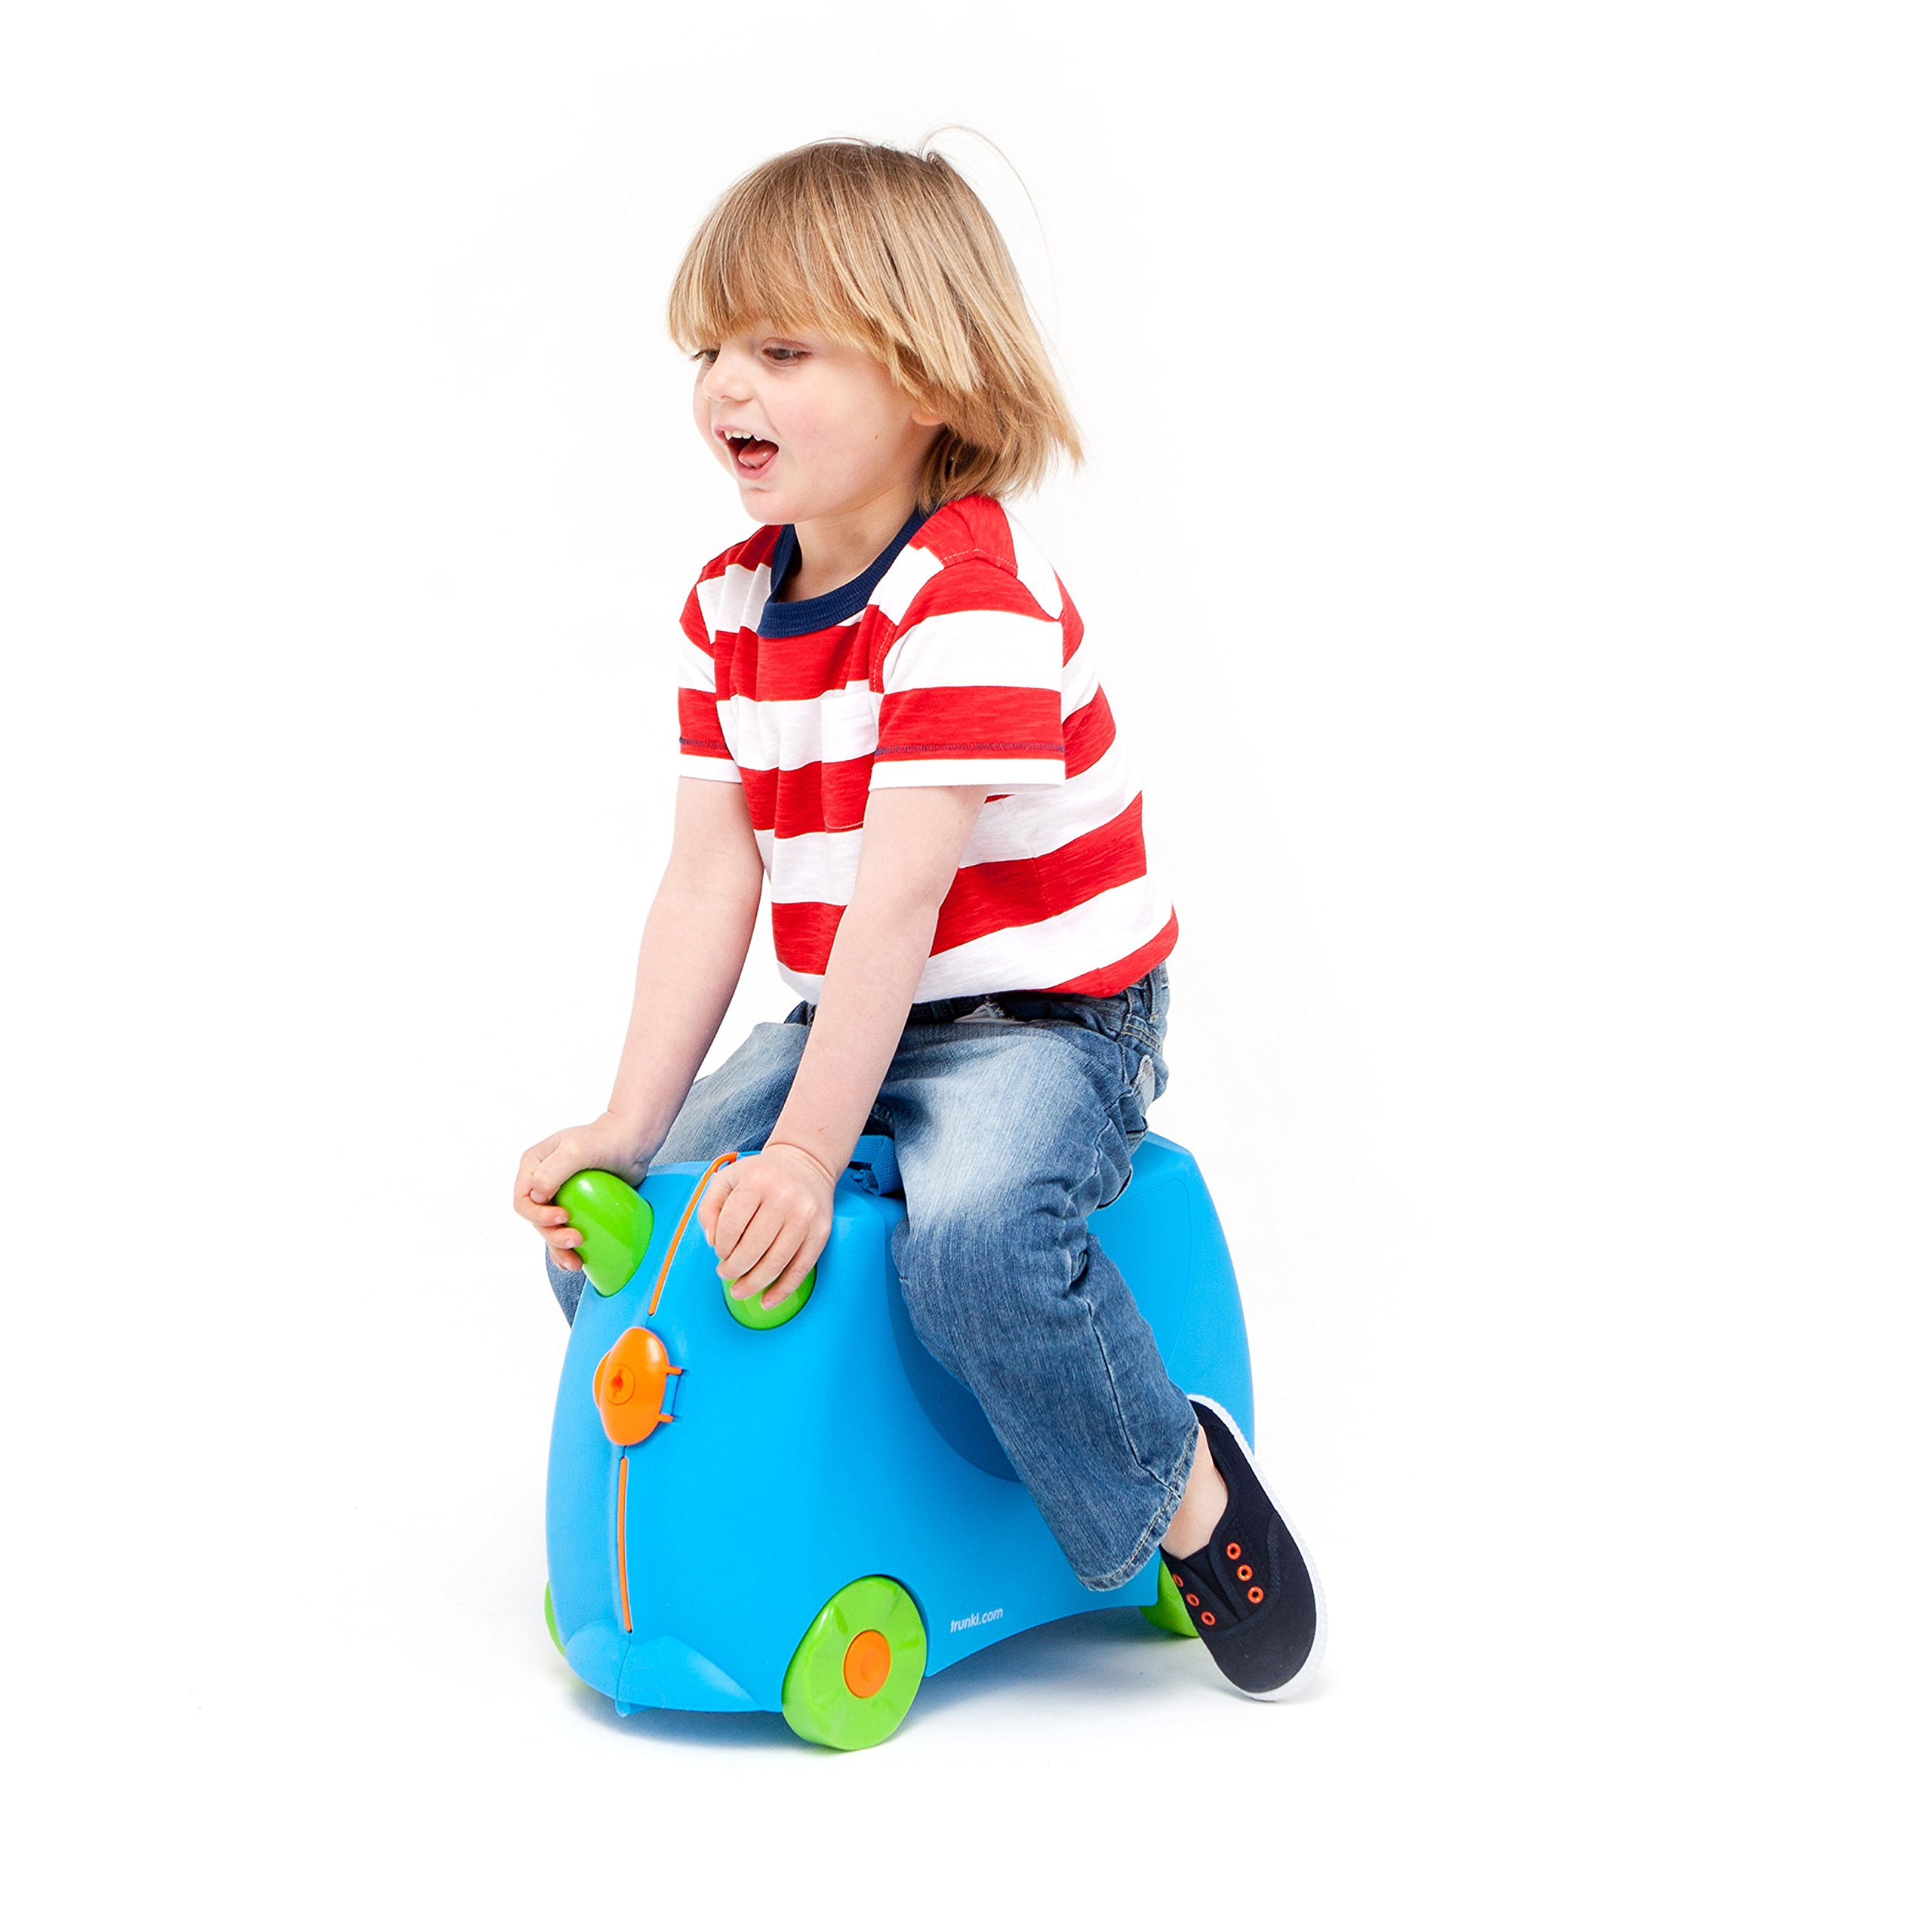 Trunki Original Kids Ride-On Suitcase and Carry-On Luggage - Terrance (Blue) by Trunki (Image #6)